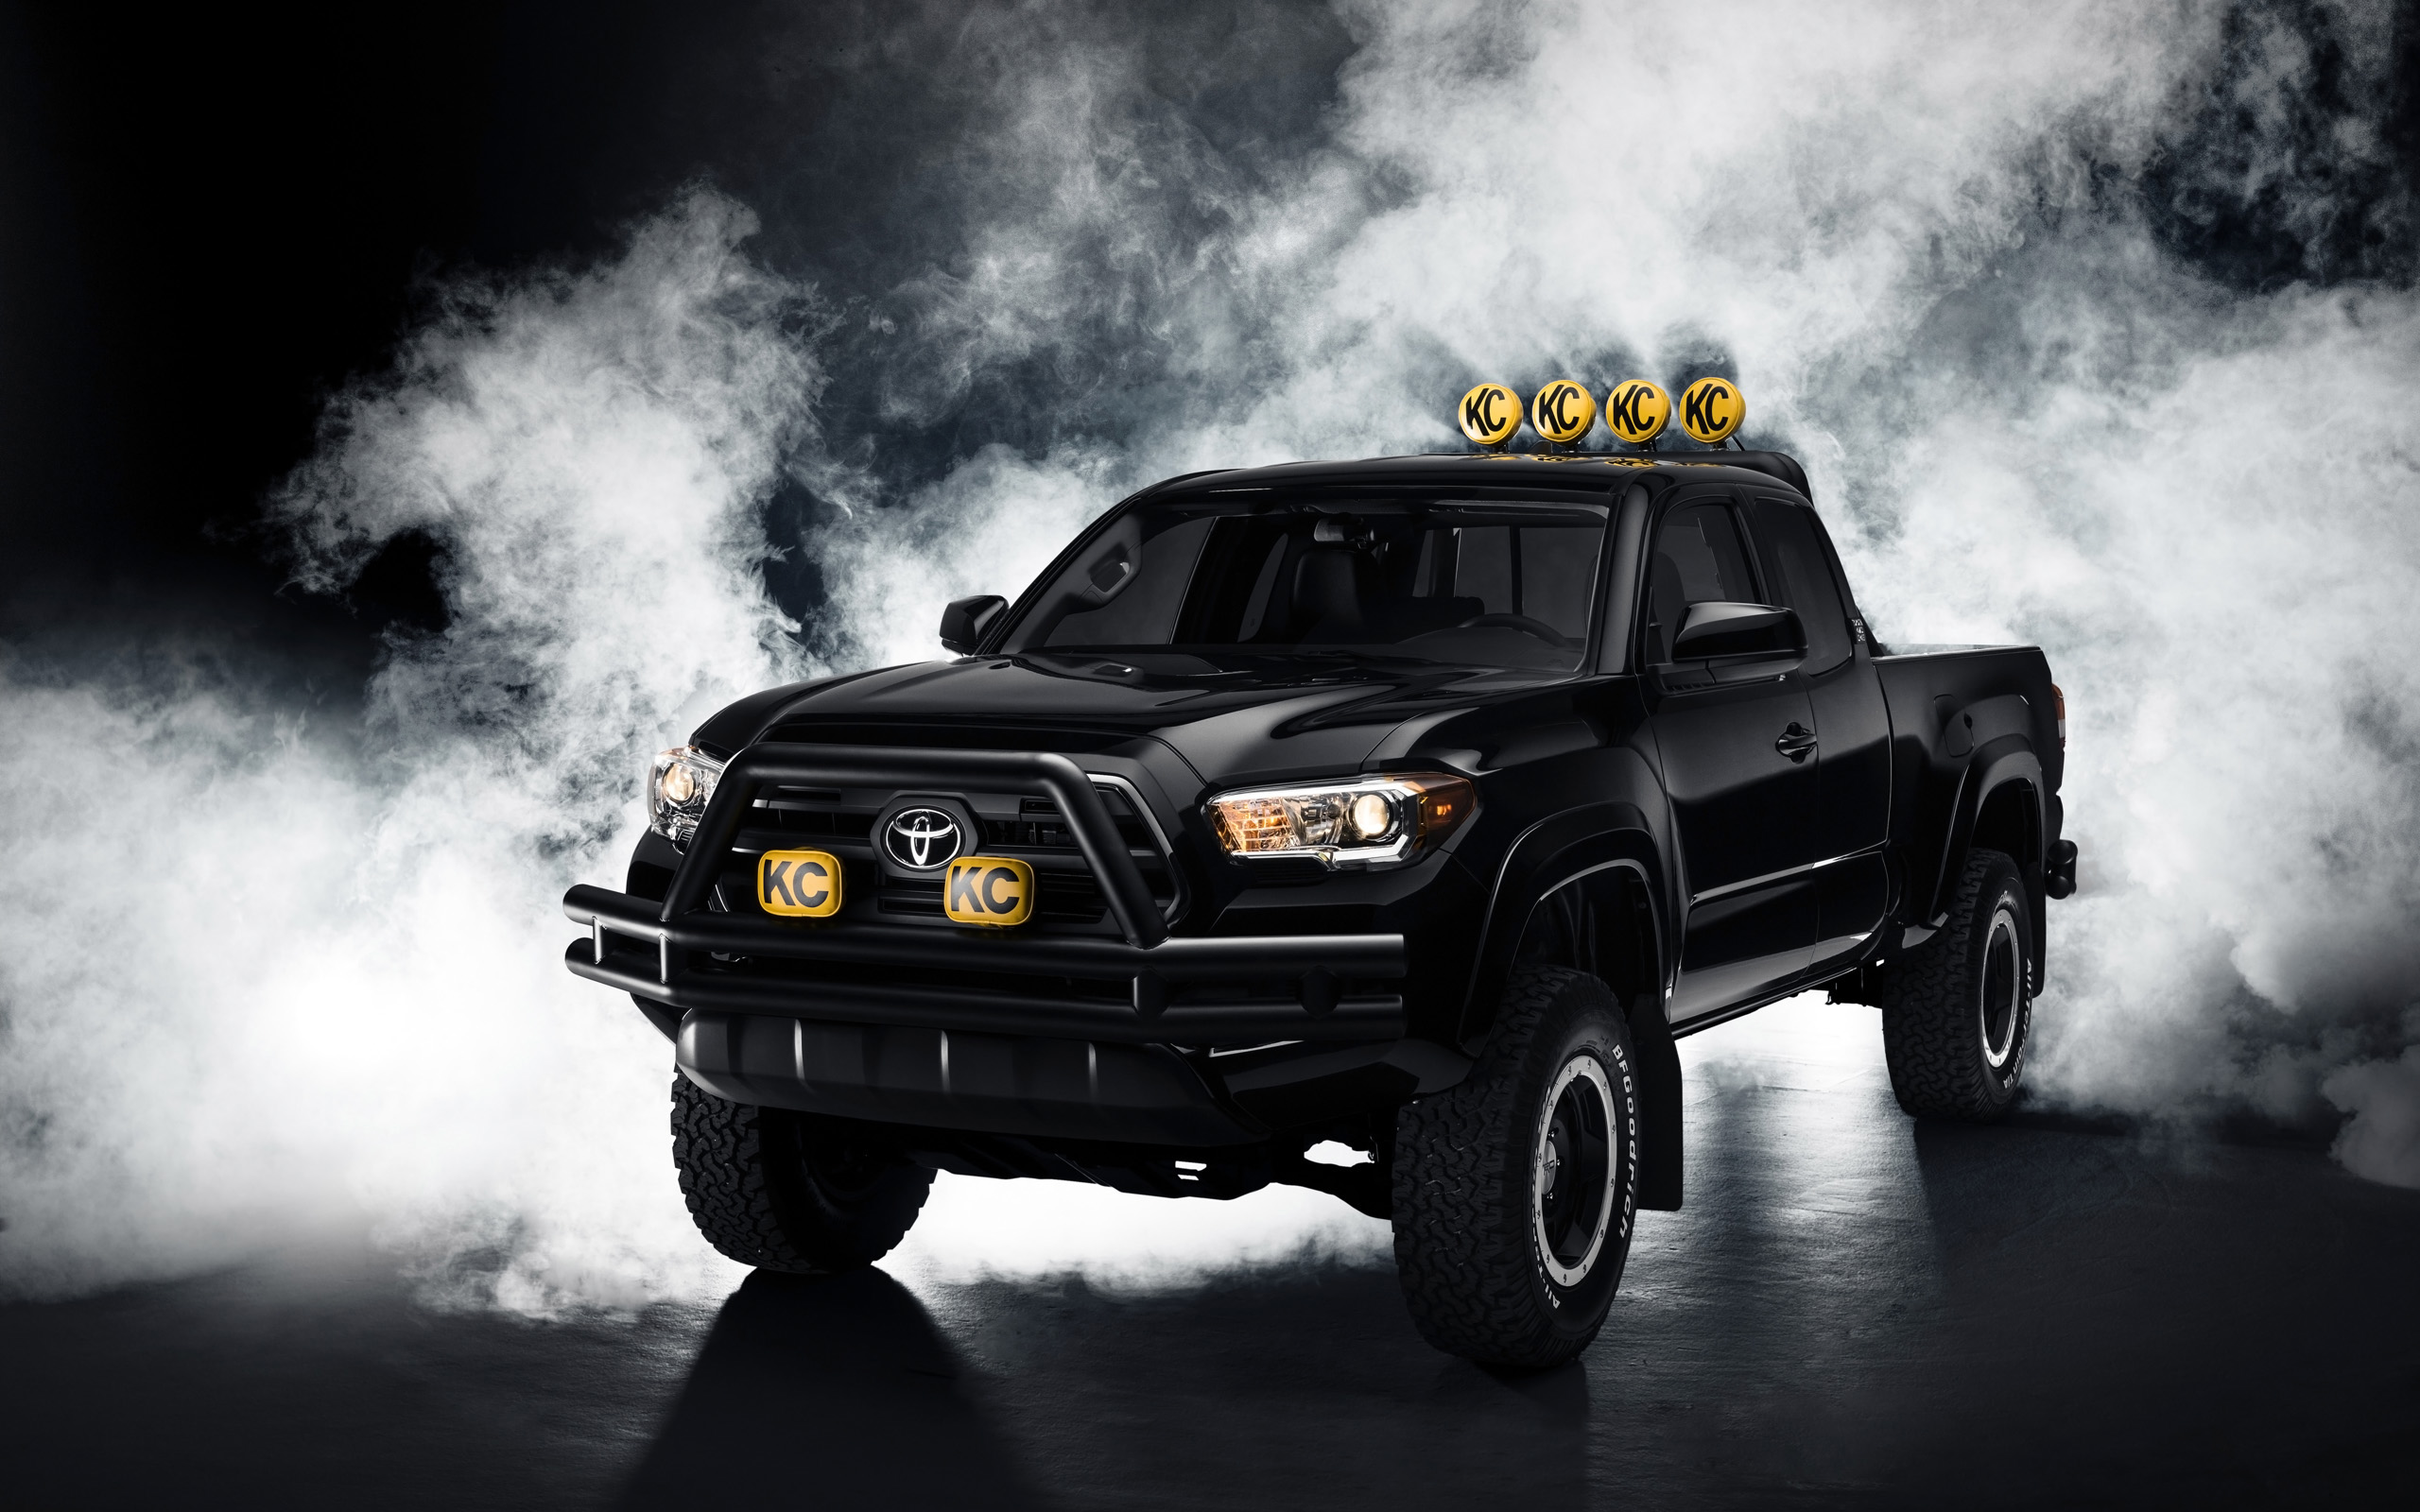 2016 Toyota Tacoma Back To The Future Wallpaper Hd Car